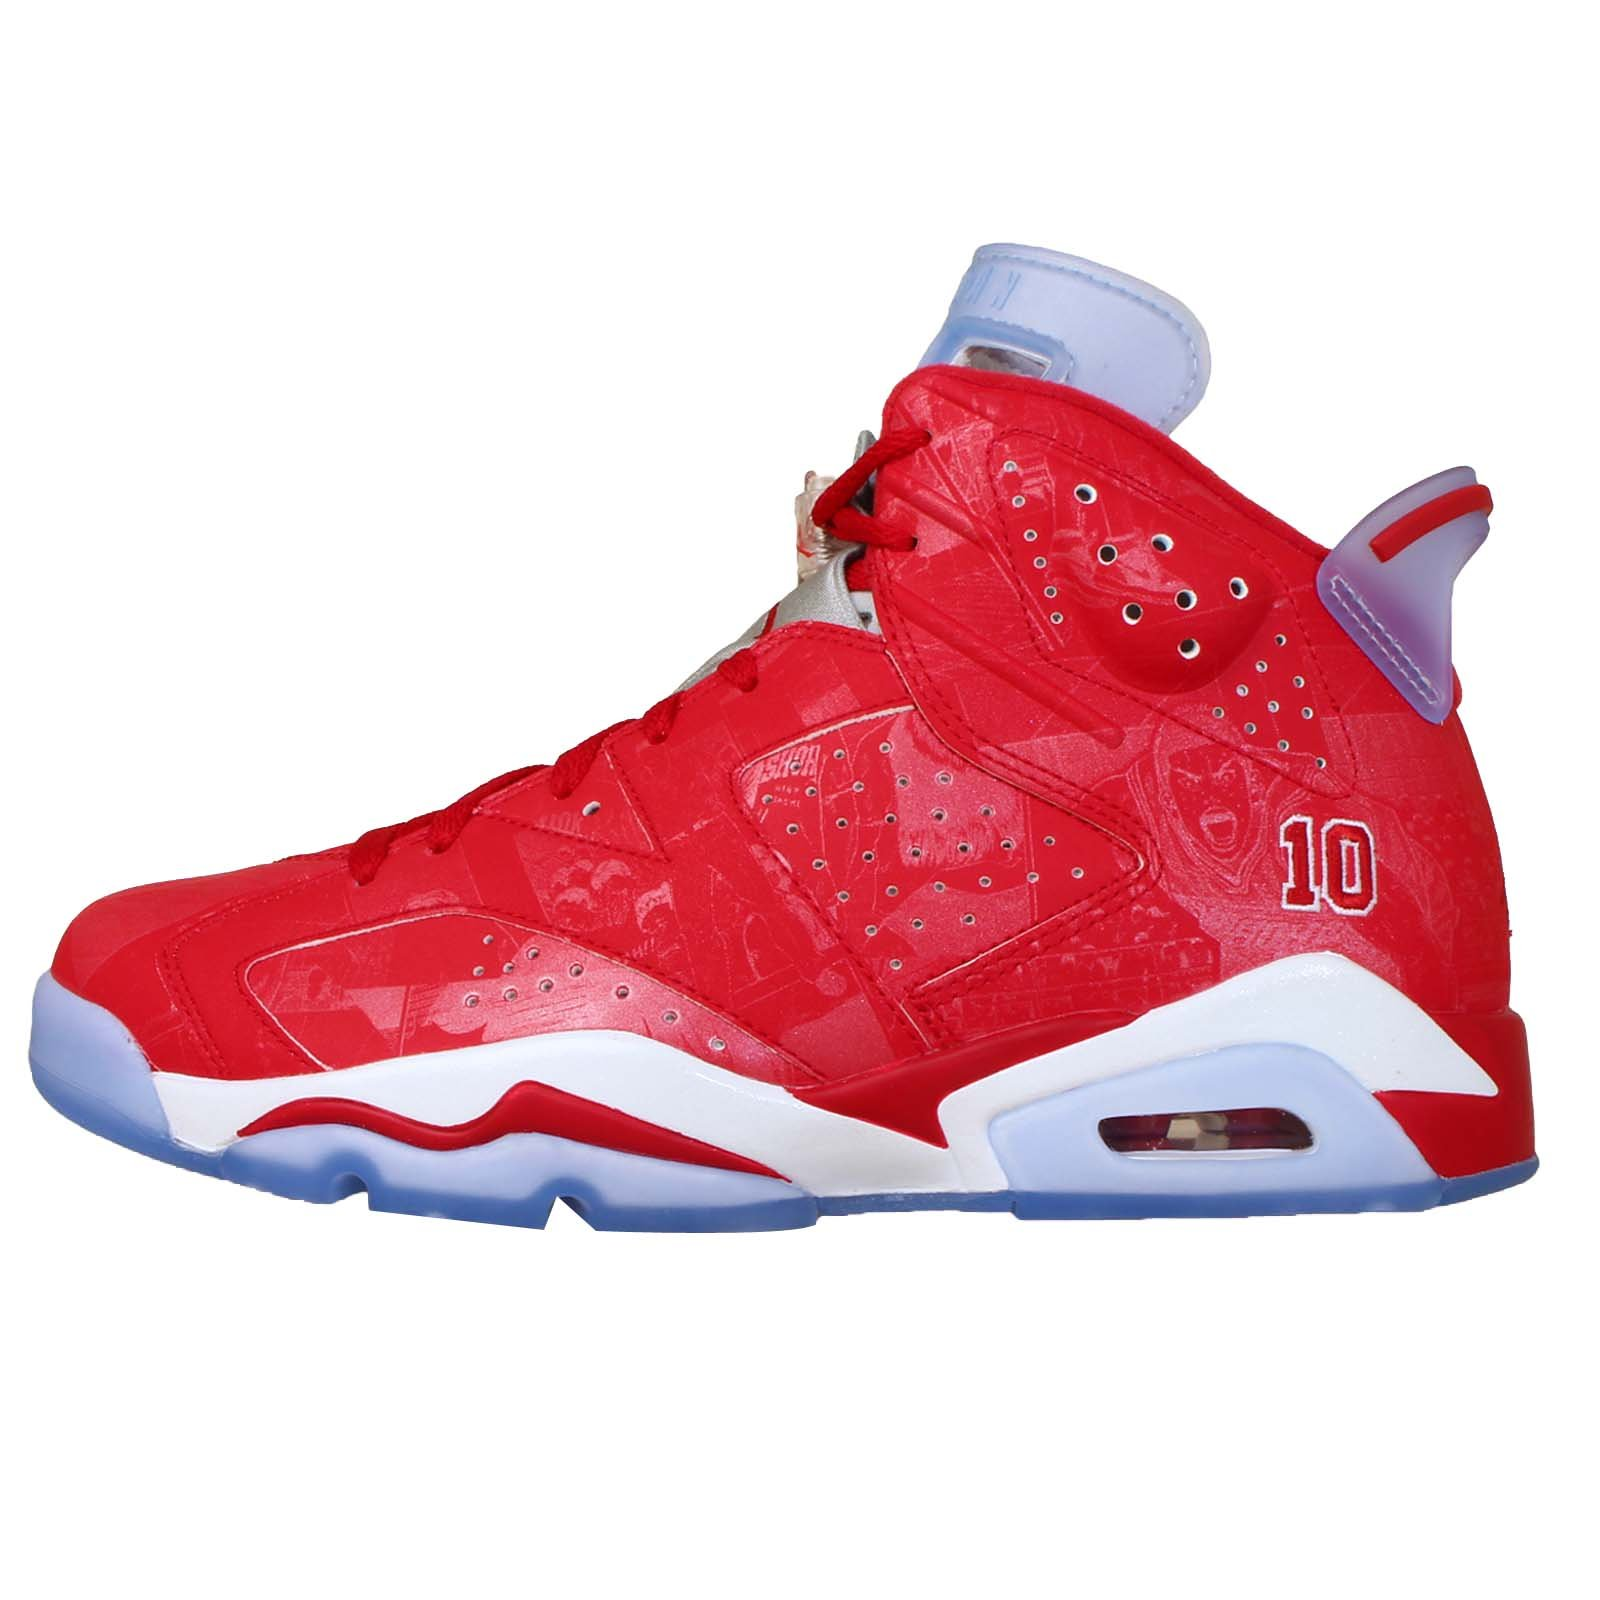 Nike Mens Air Jordan 6 Retro X Slam Dunk Varsity Red-White Leather Basketball Shoes